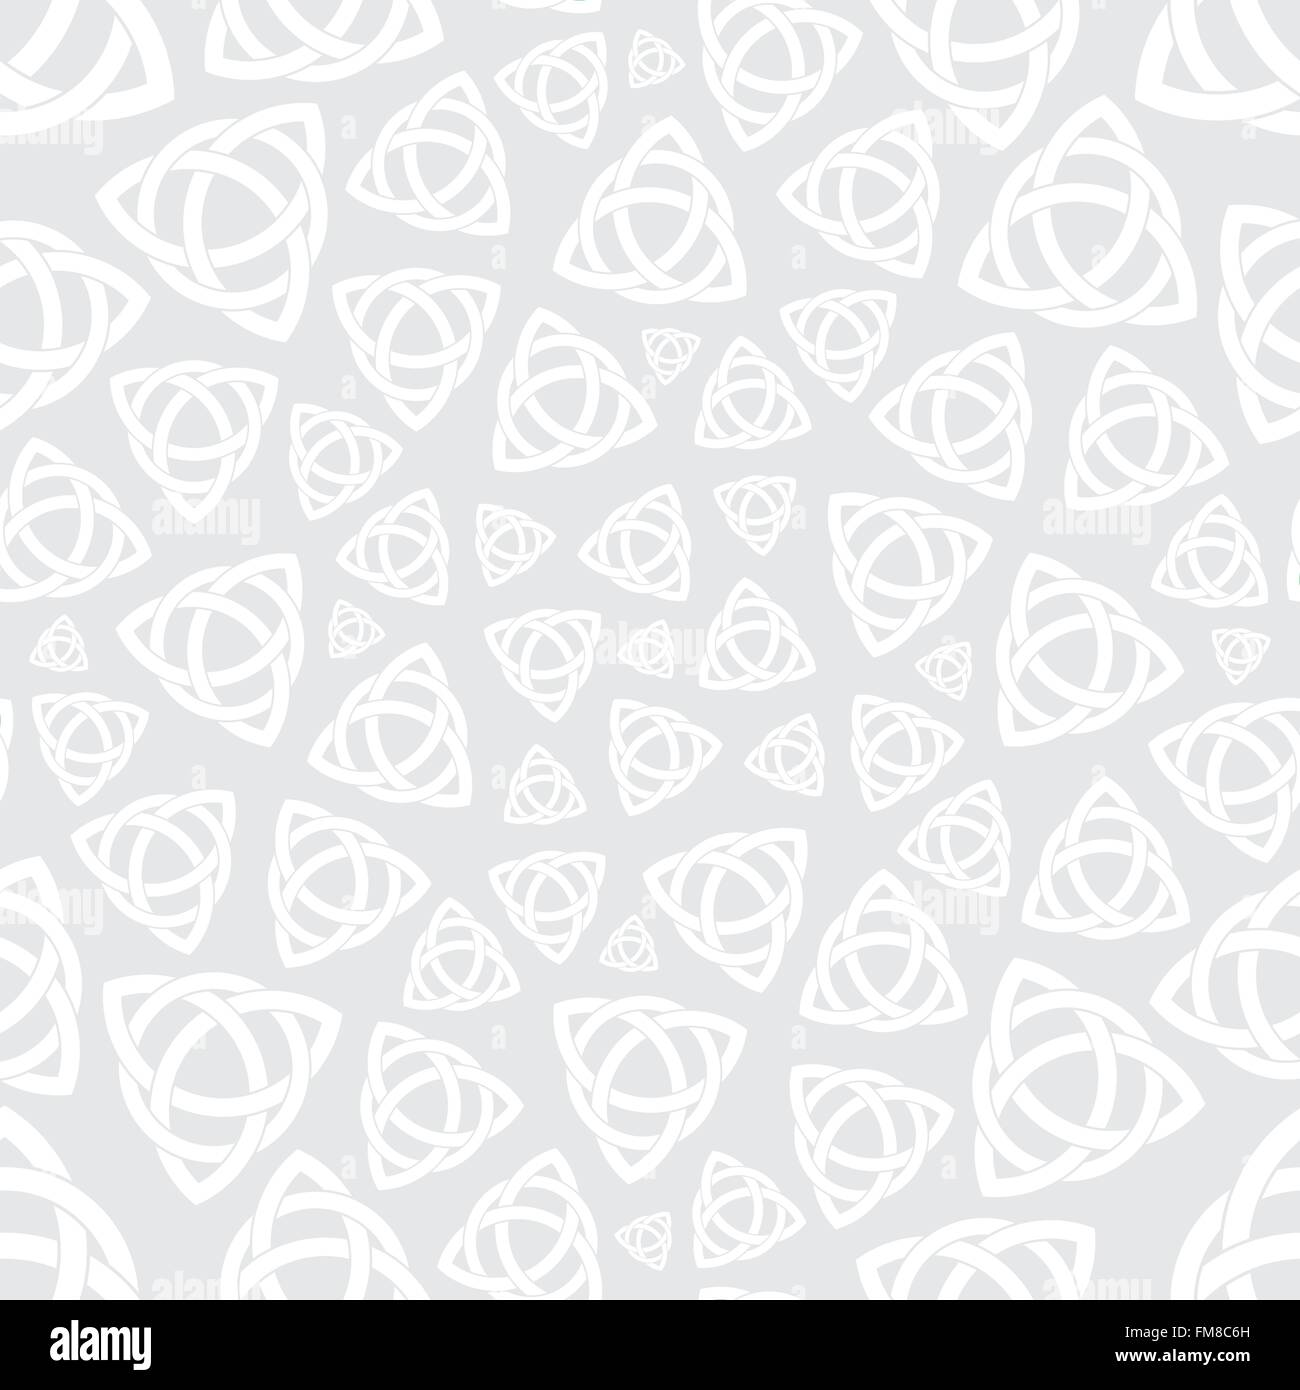 Seamless background pattern with celtic trinity knot symbol - Stock Vector